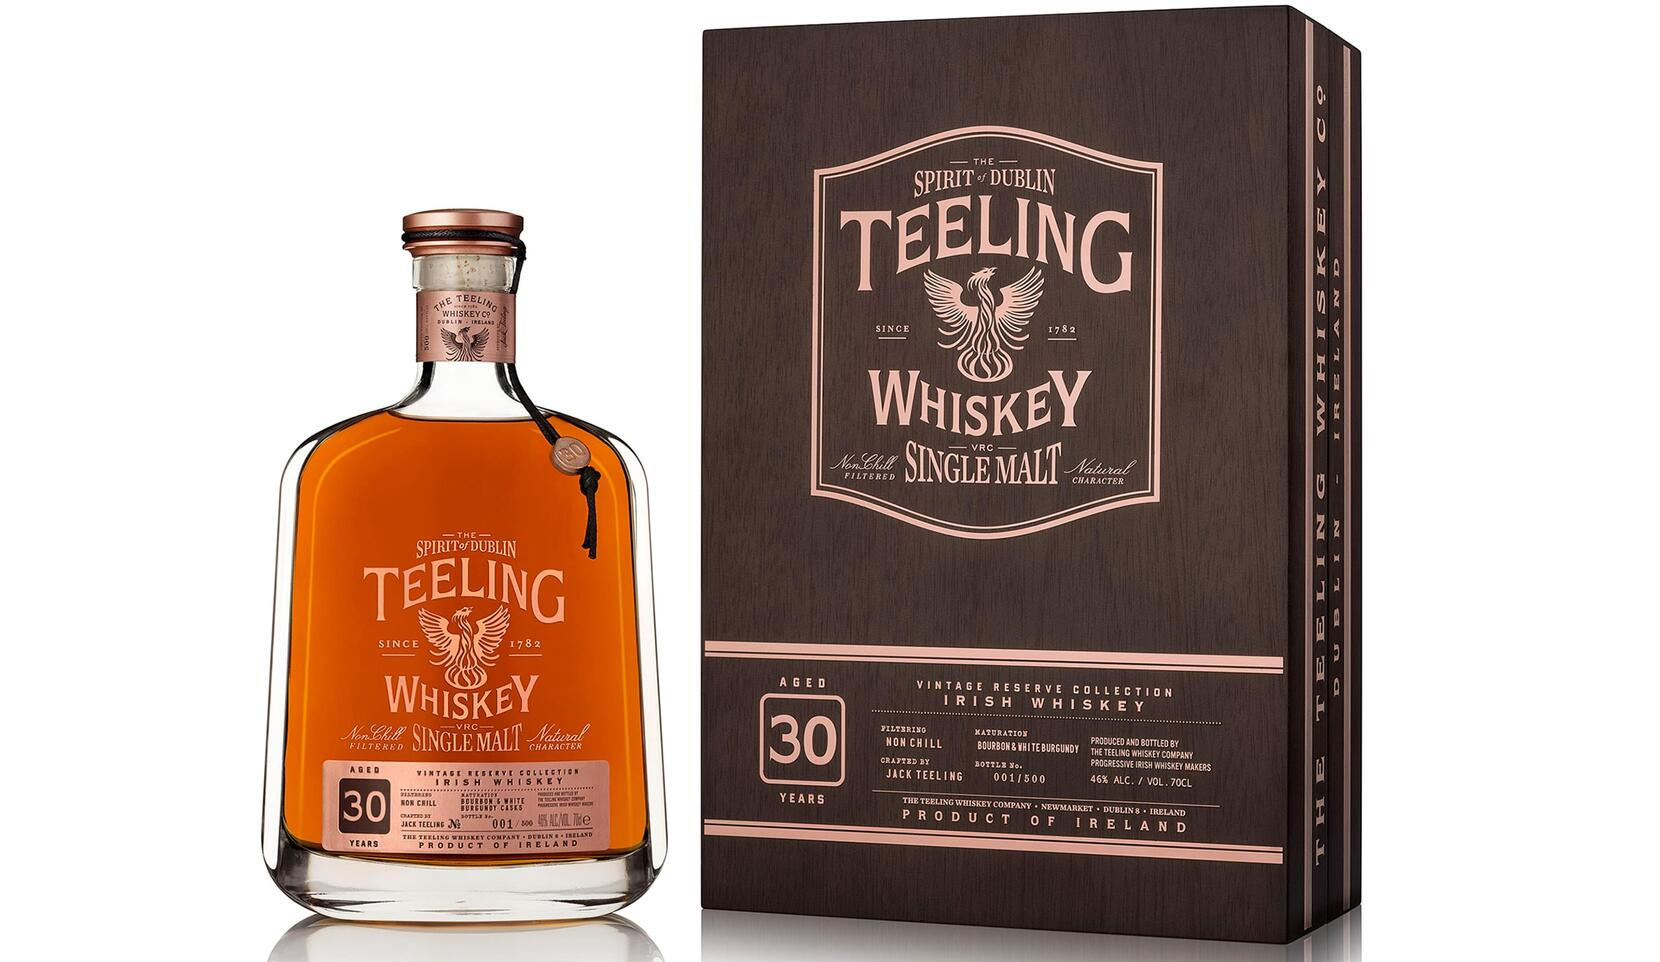 Latest limited release in award winning Teeling Vintage Reserve Collection